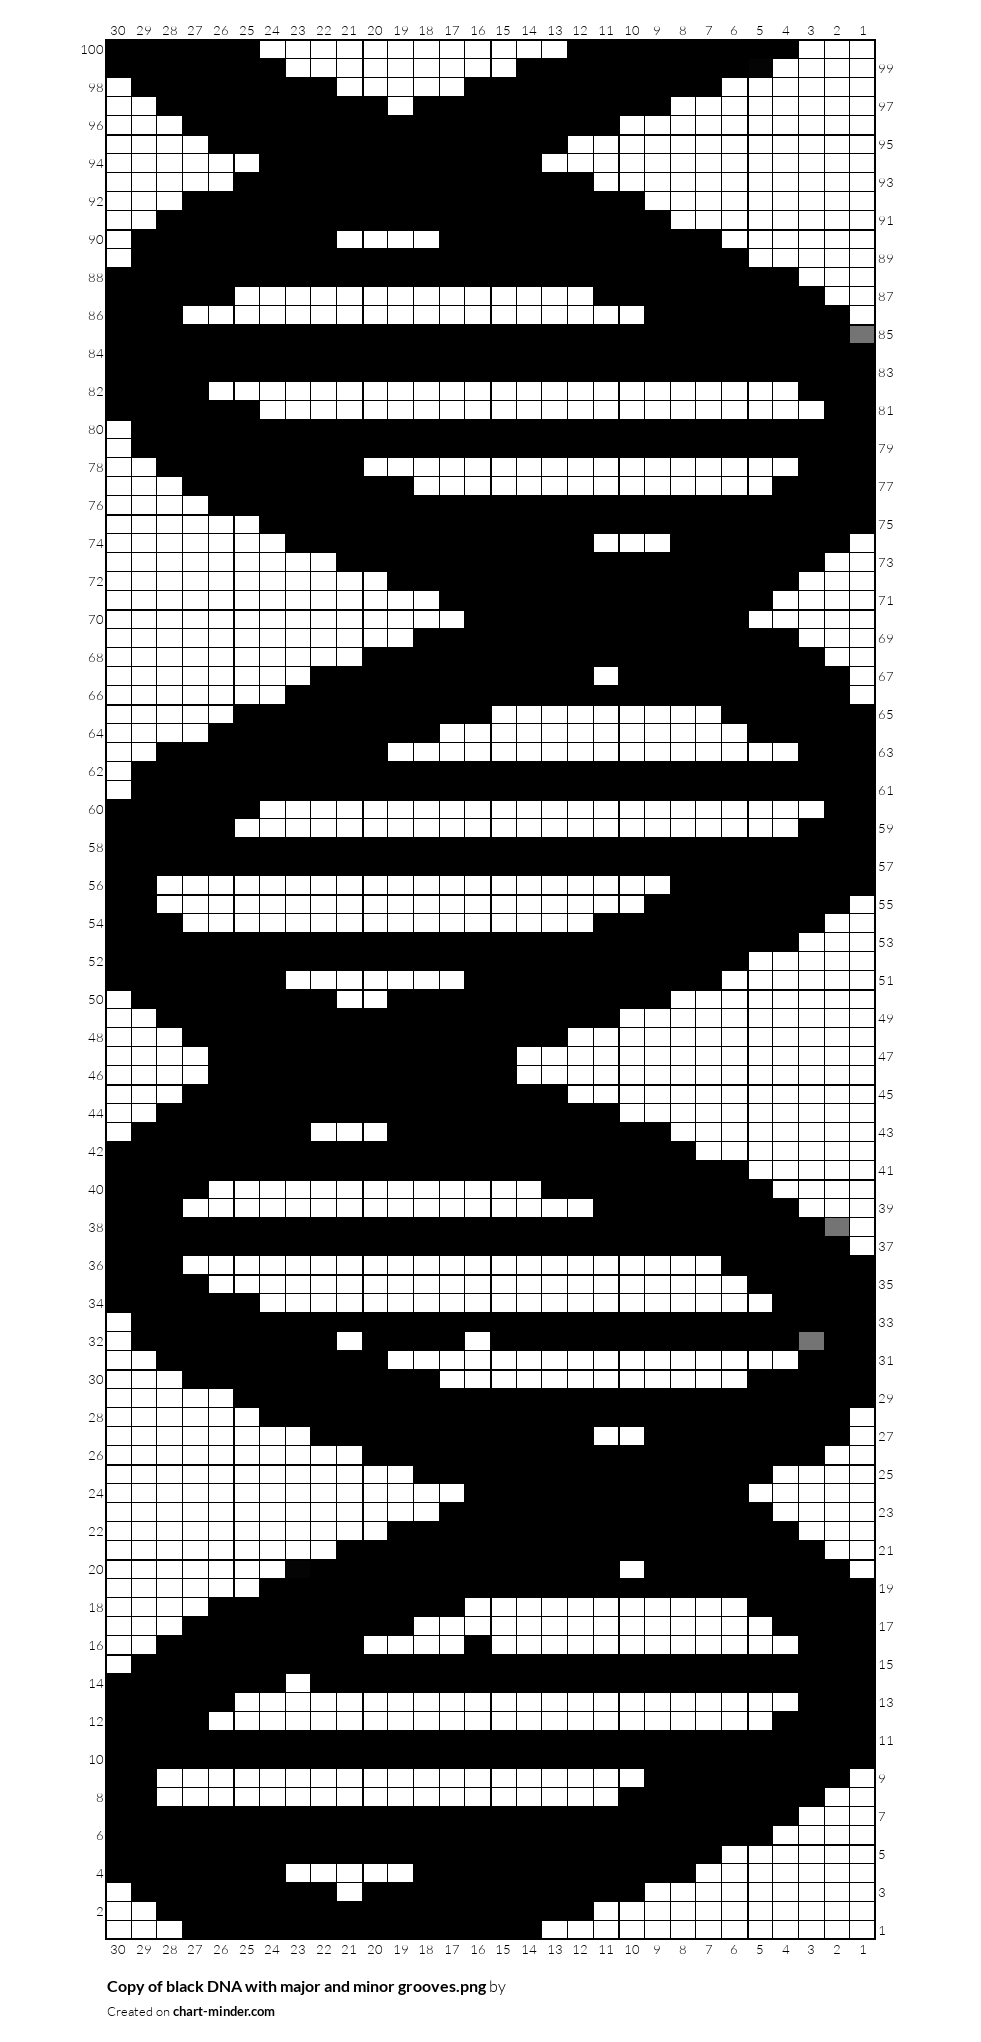 Copy of black DNA with major and minor grooves.png